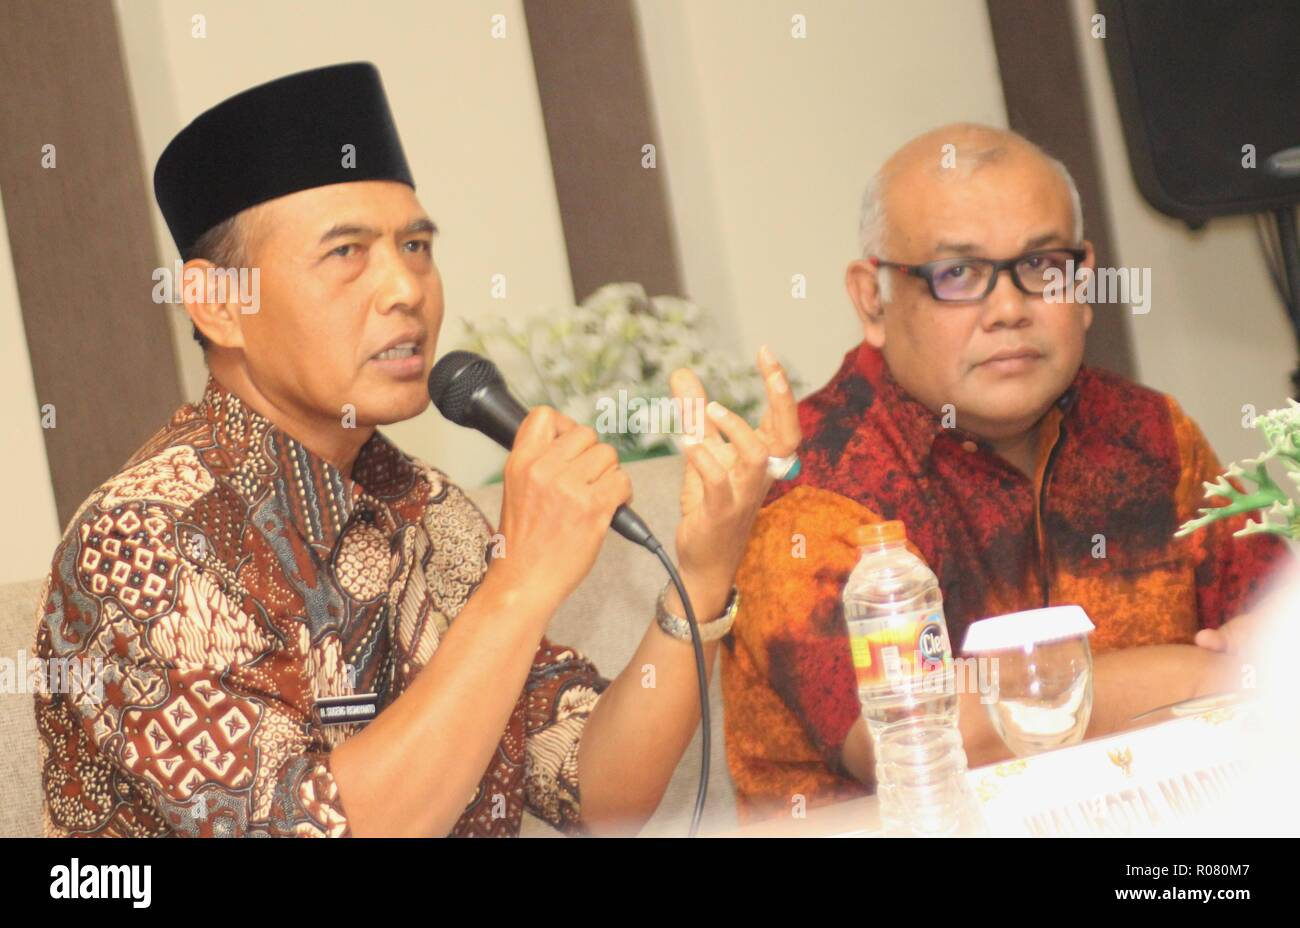 "Mayor of Madiun H. Sugeng Rismiyanto [left] accompanied by Head of Representative of Bank Indonesia Kediri, Djoko Raharto [right] delivered a presentation during a press release in the meeting room of one of the hotels in Madiun City. The press release is related Bank Indonesia will hold an Economic Seminar, Respondent Gathering, the Small and Medium Micro Business Festival and the National Payment Gate Campaign for three days. This is in the context of Regional Economic Development after Trans Java Toll Road and Double Track Railway "" (Photo by Ajun Ally/Pacific Press) - Stock Image"